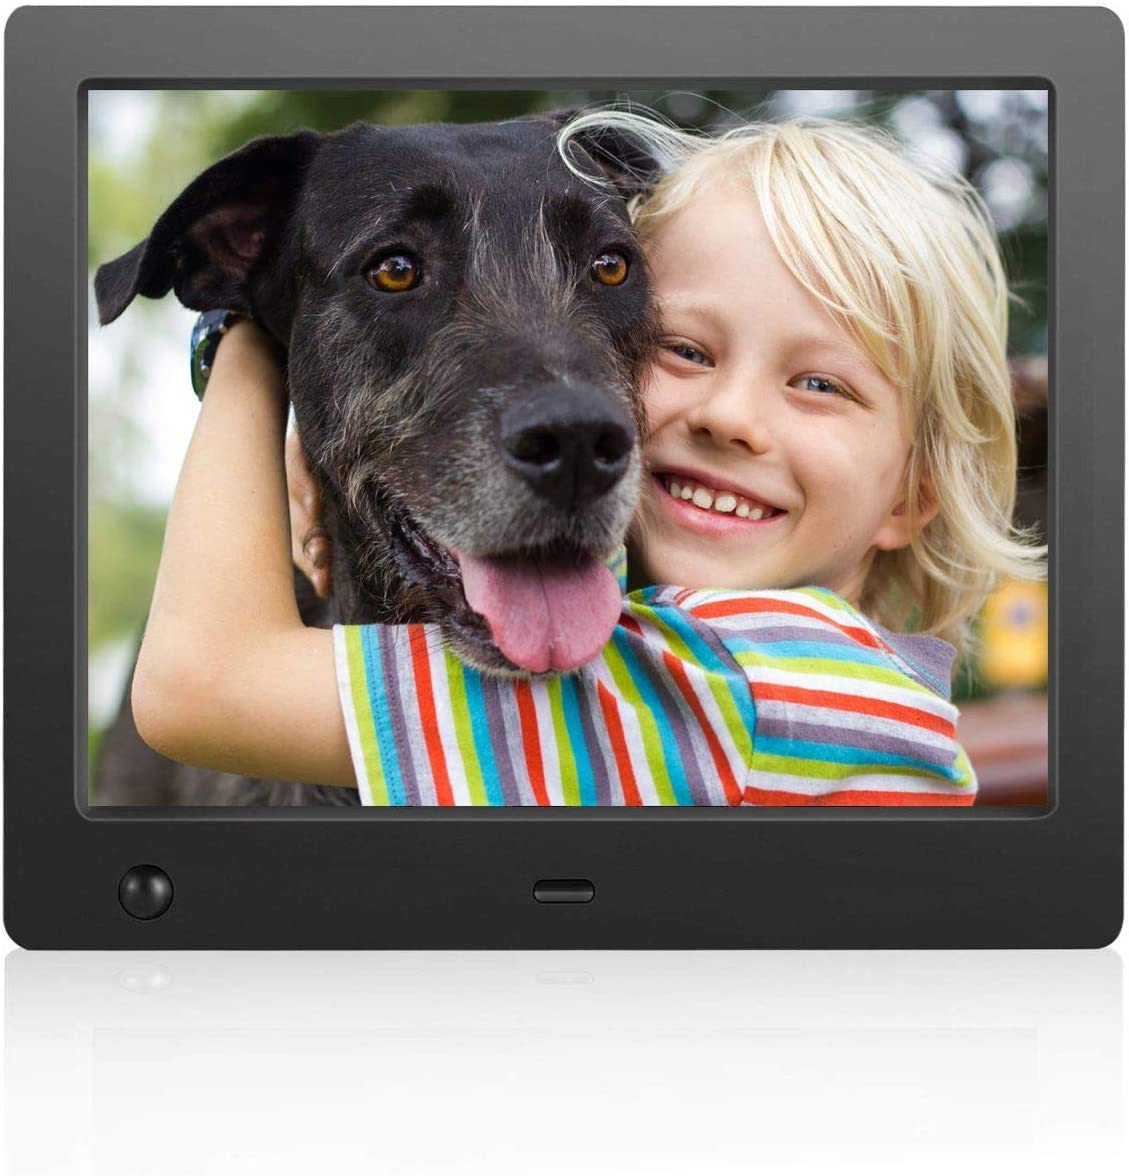 Flyamapirit Digital Picture Frame 8 inch Electronic Digital Photo Frame with High Resolution